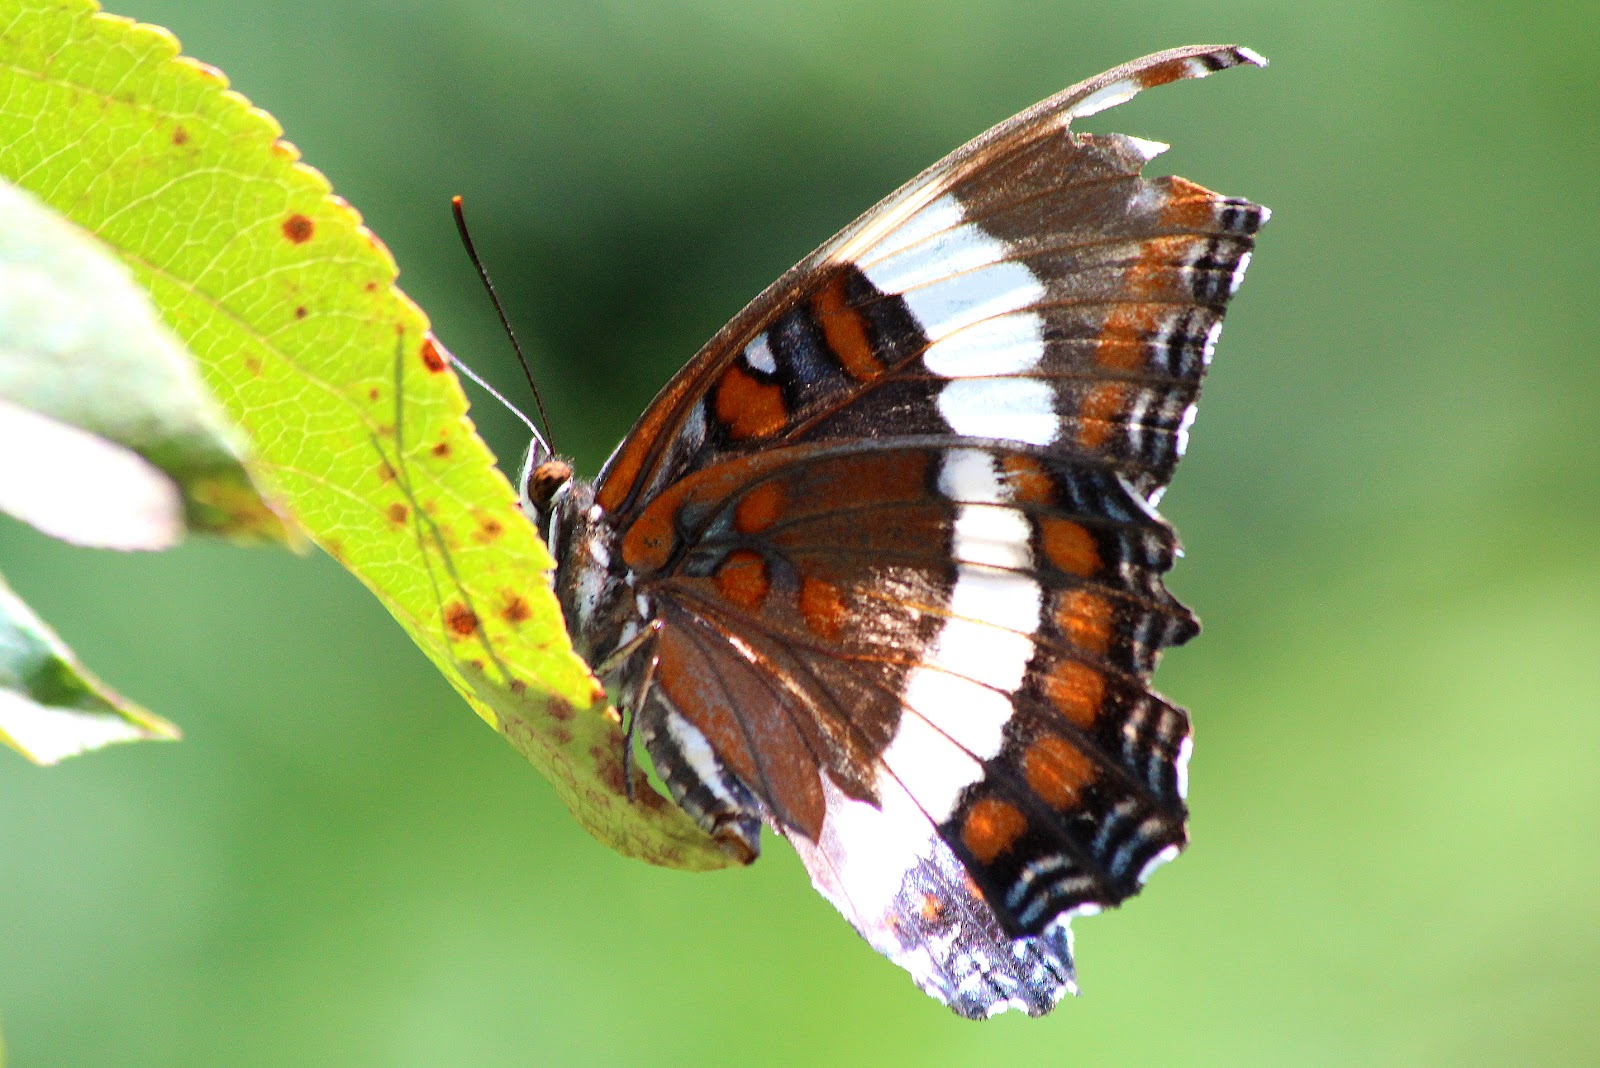 A butterfly perches on a birch leaf in the spring